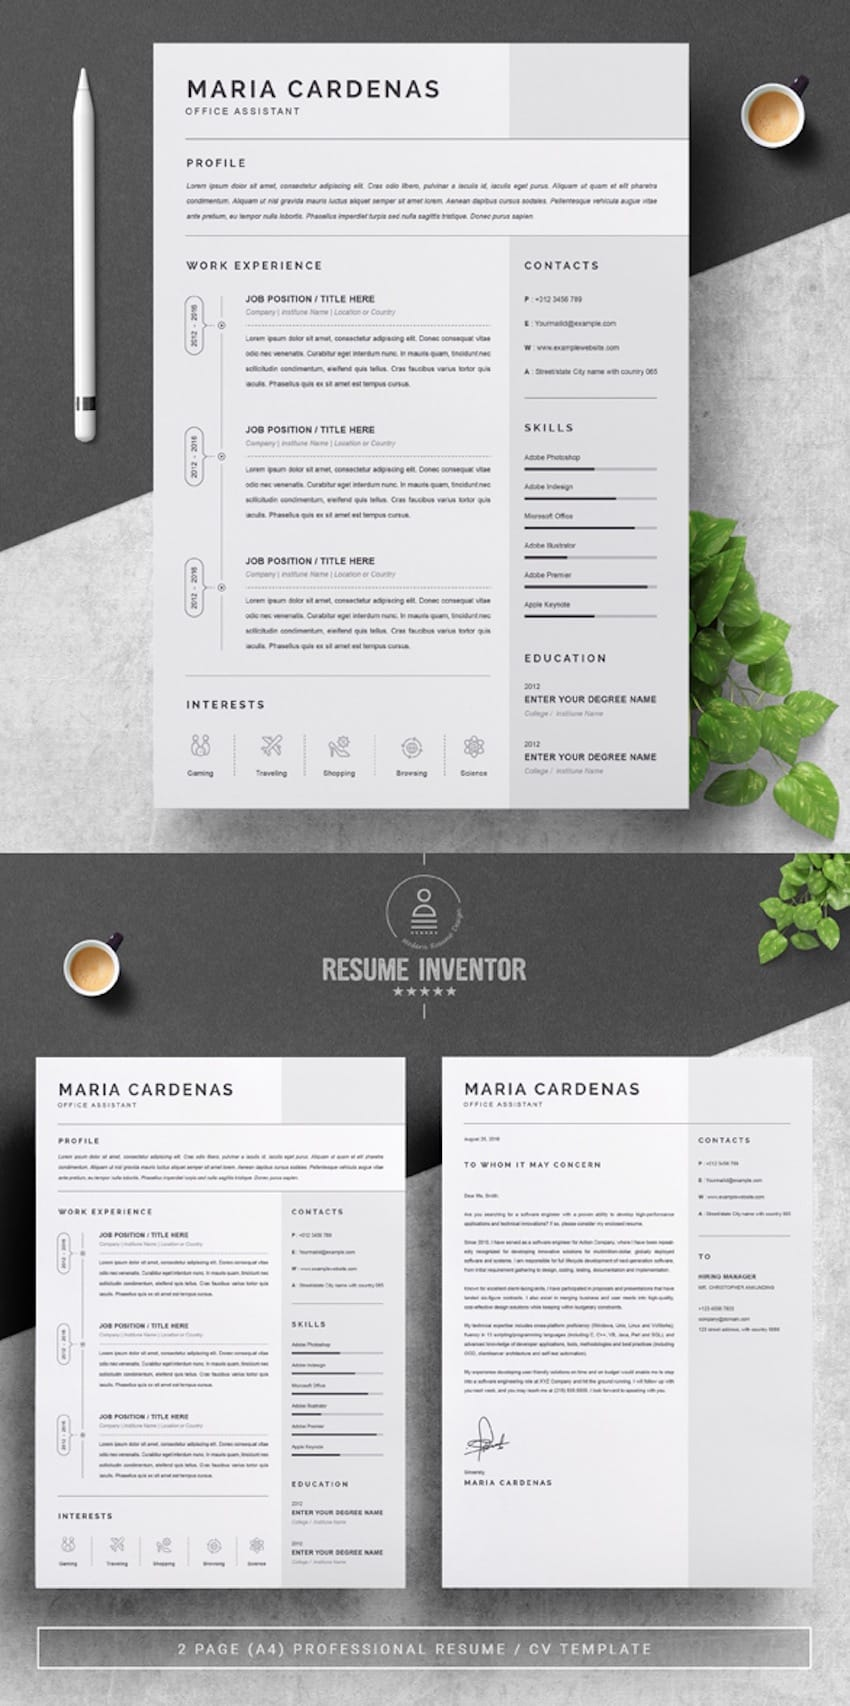 creative dynamic resume cv templates for professional jobs in examples en one template Resume Creative Professional Resume Examples